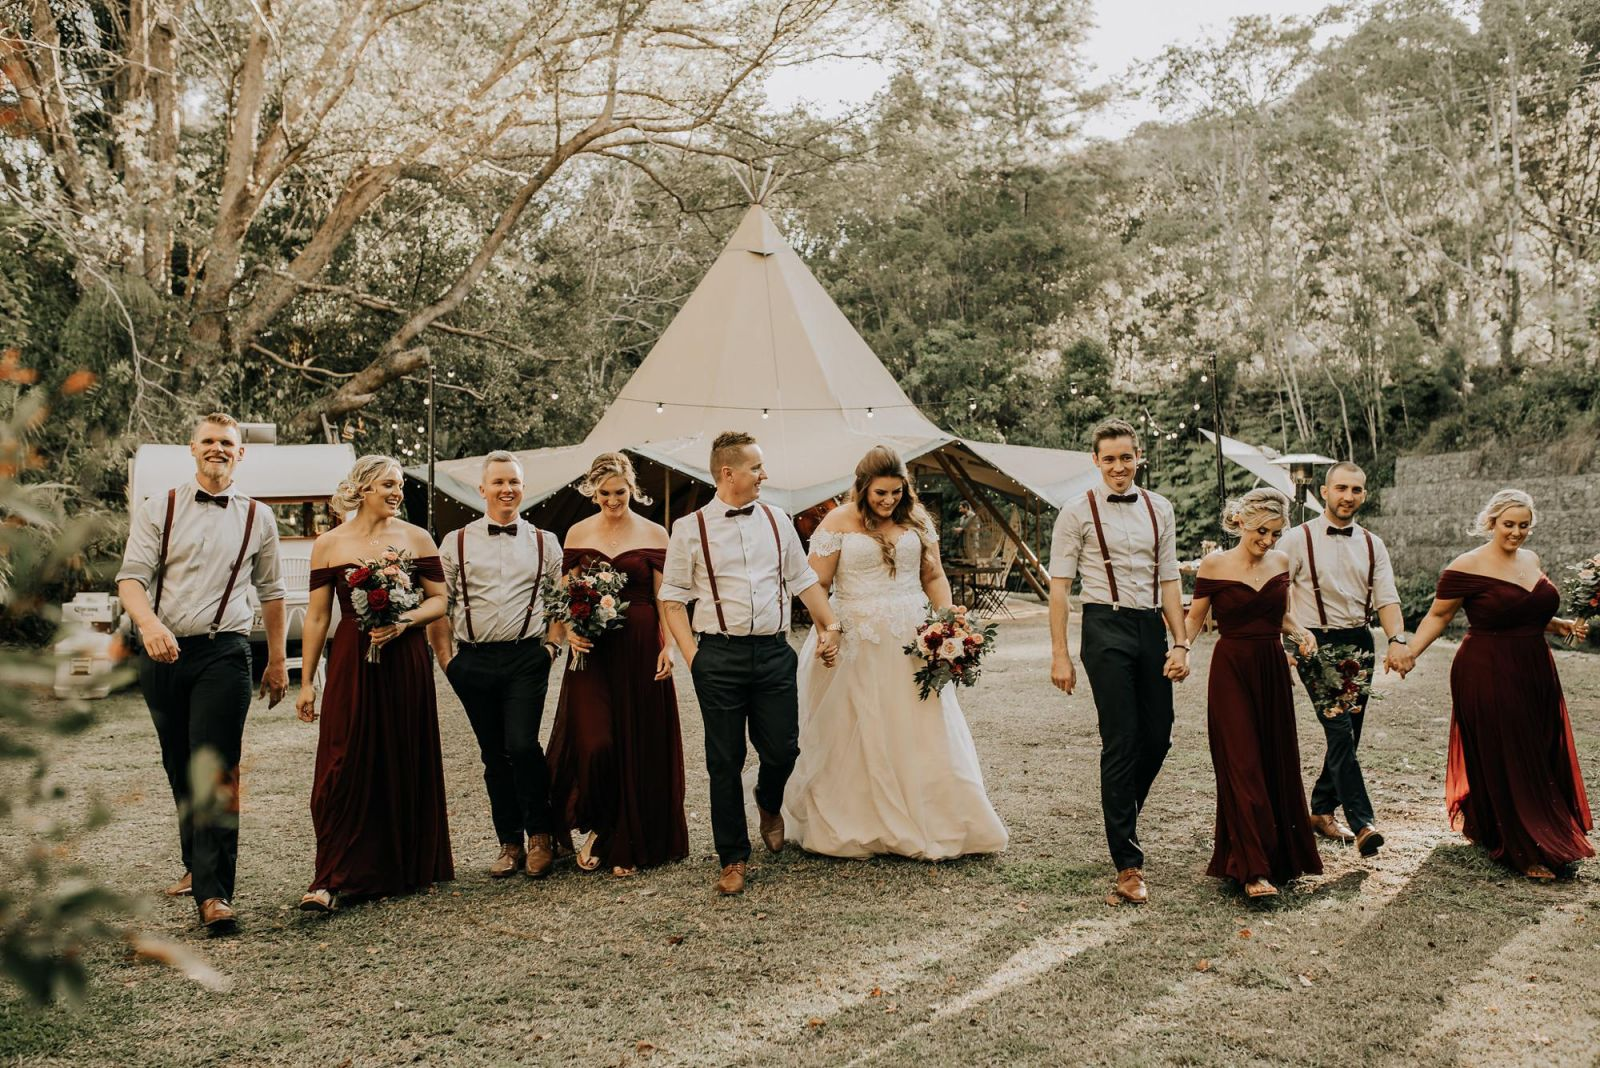 Sol Gardens Tipi Wedding